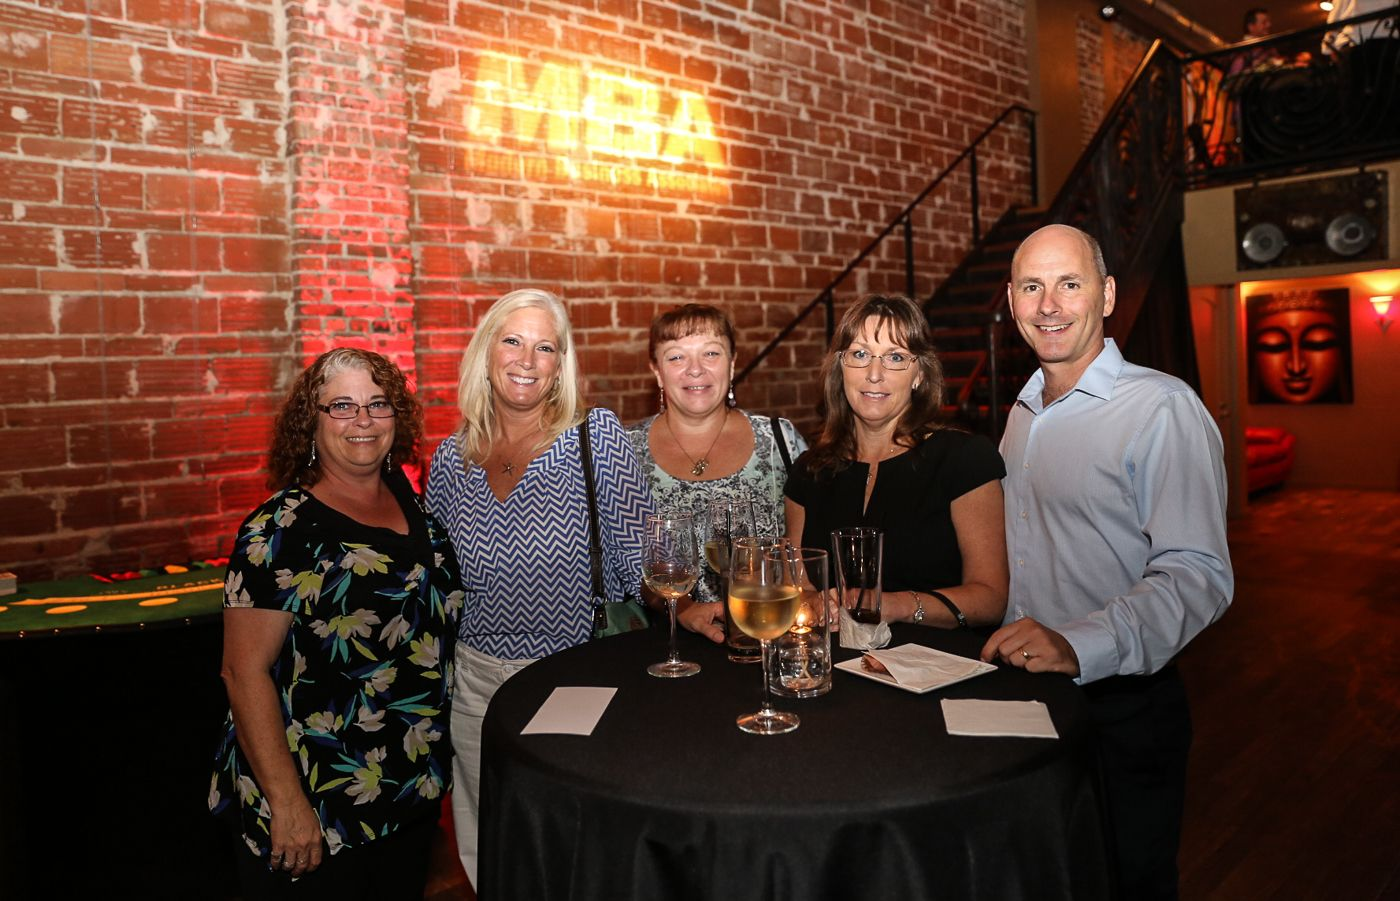 2015 08-08 Modern-Business-Associates-at-venue-NOVA-535-downtown-StPete-35